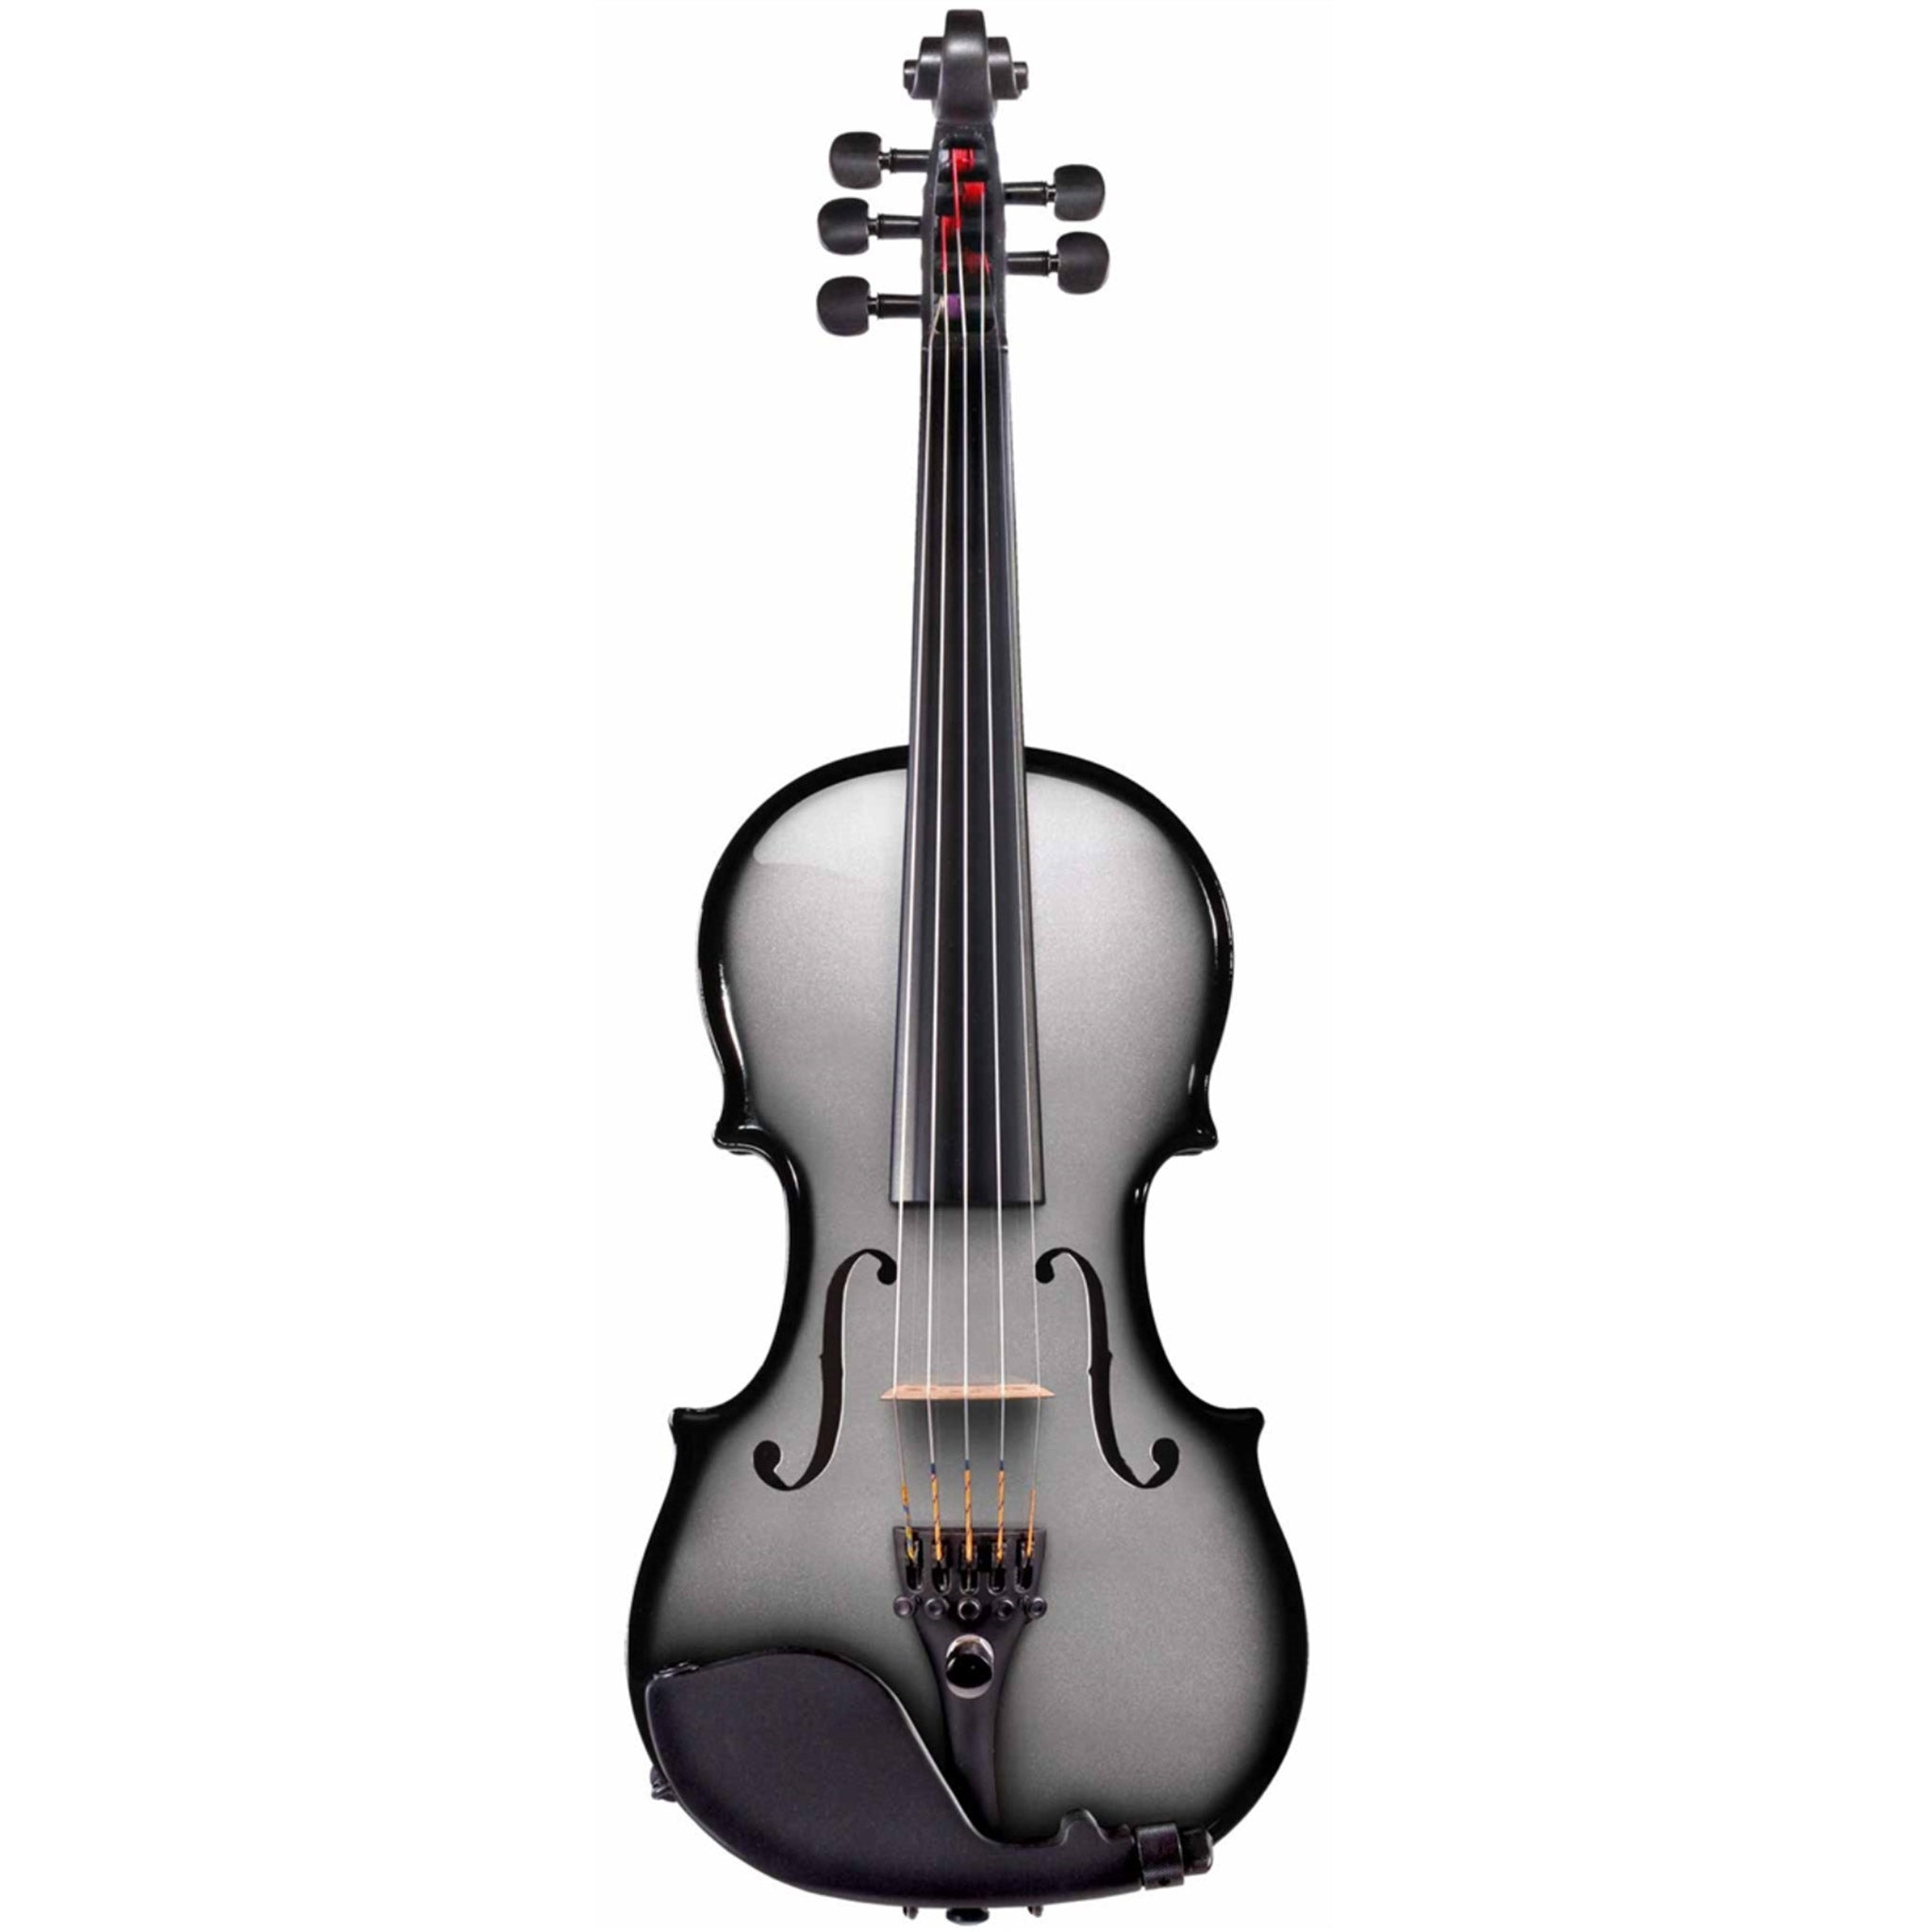 Glasser AEX Carbon Composite Acoustic-Electric 5-String Viola